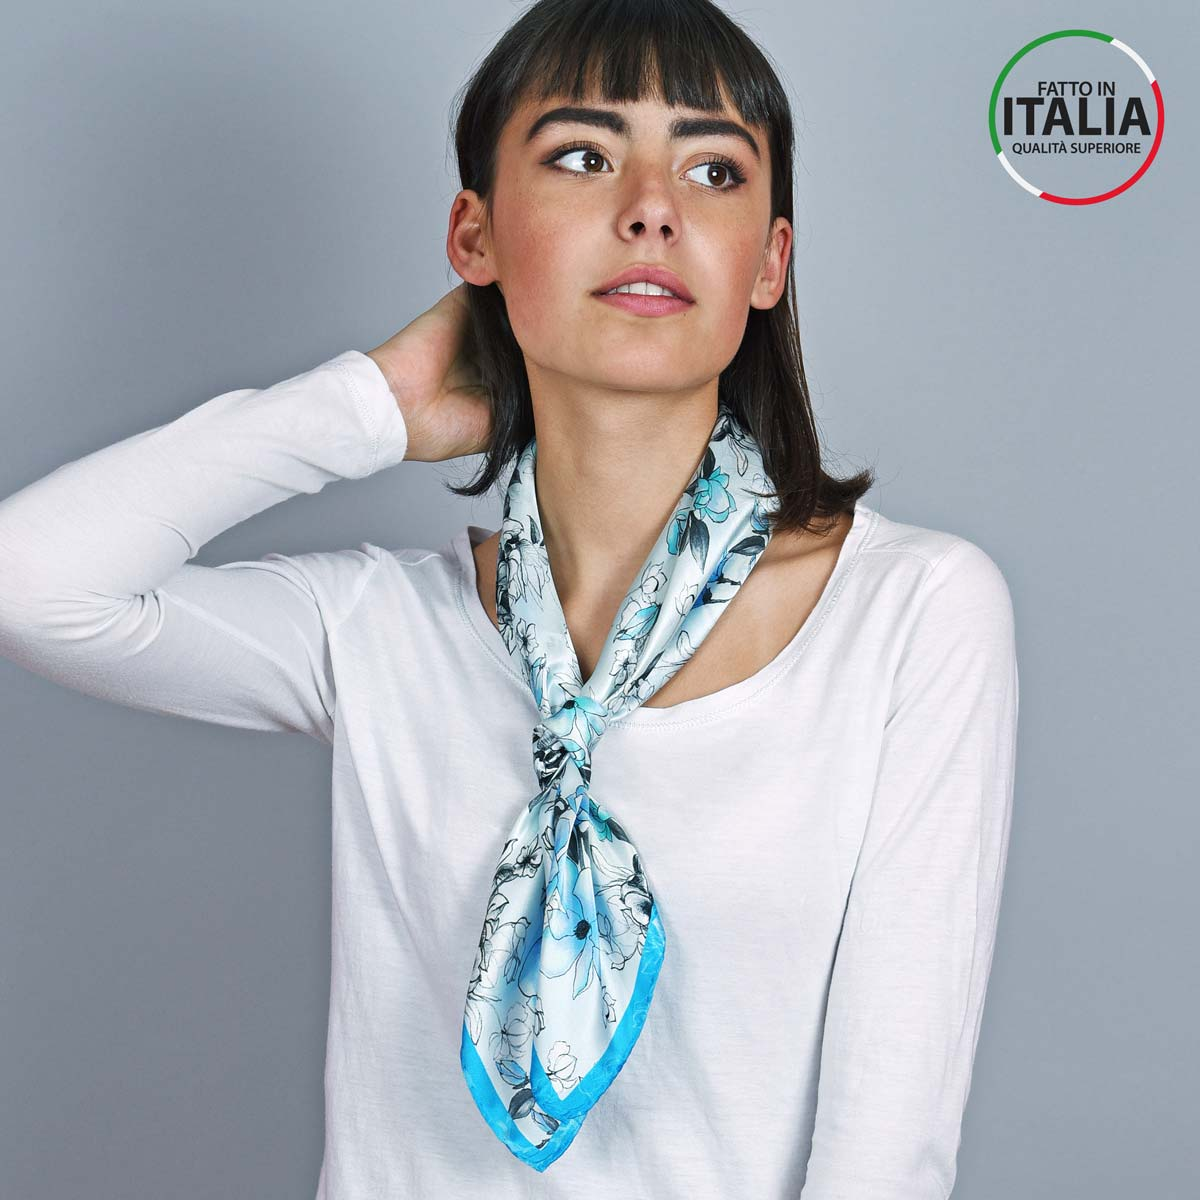 AT-05394_W12-2IT_Foulard-soie-floral-bleu-made-in-italie